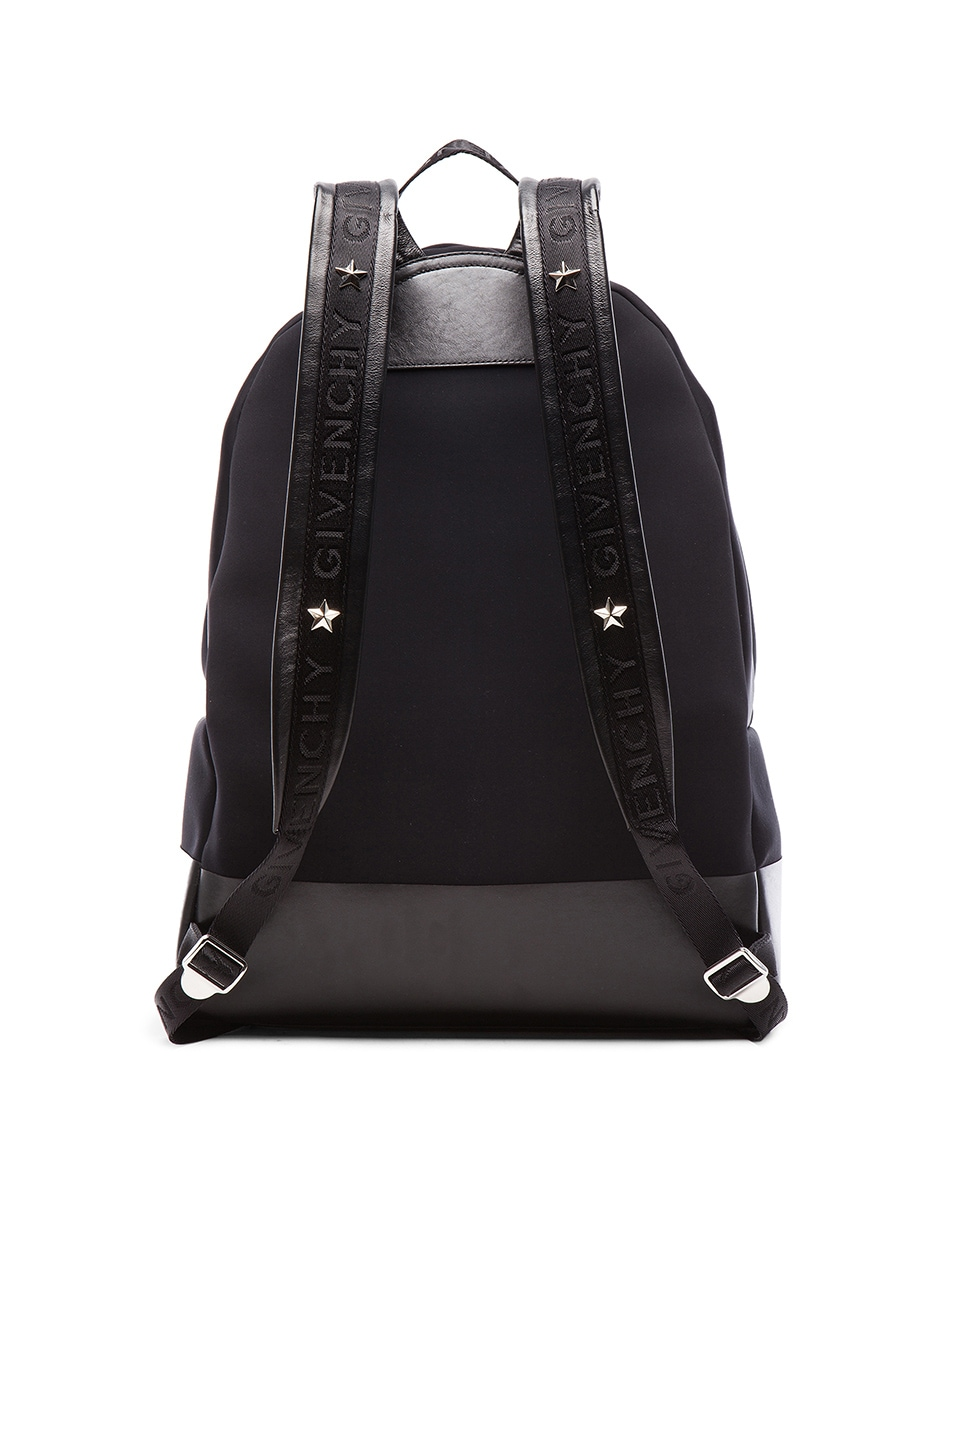 b6c7fcf6a2 Image 2 of Givenchy Neoprene Backpack with Star and Stripes in Black